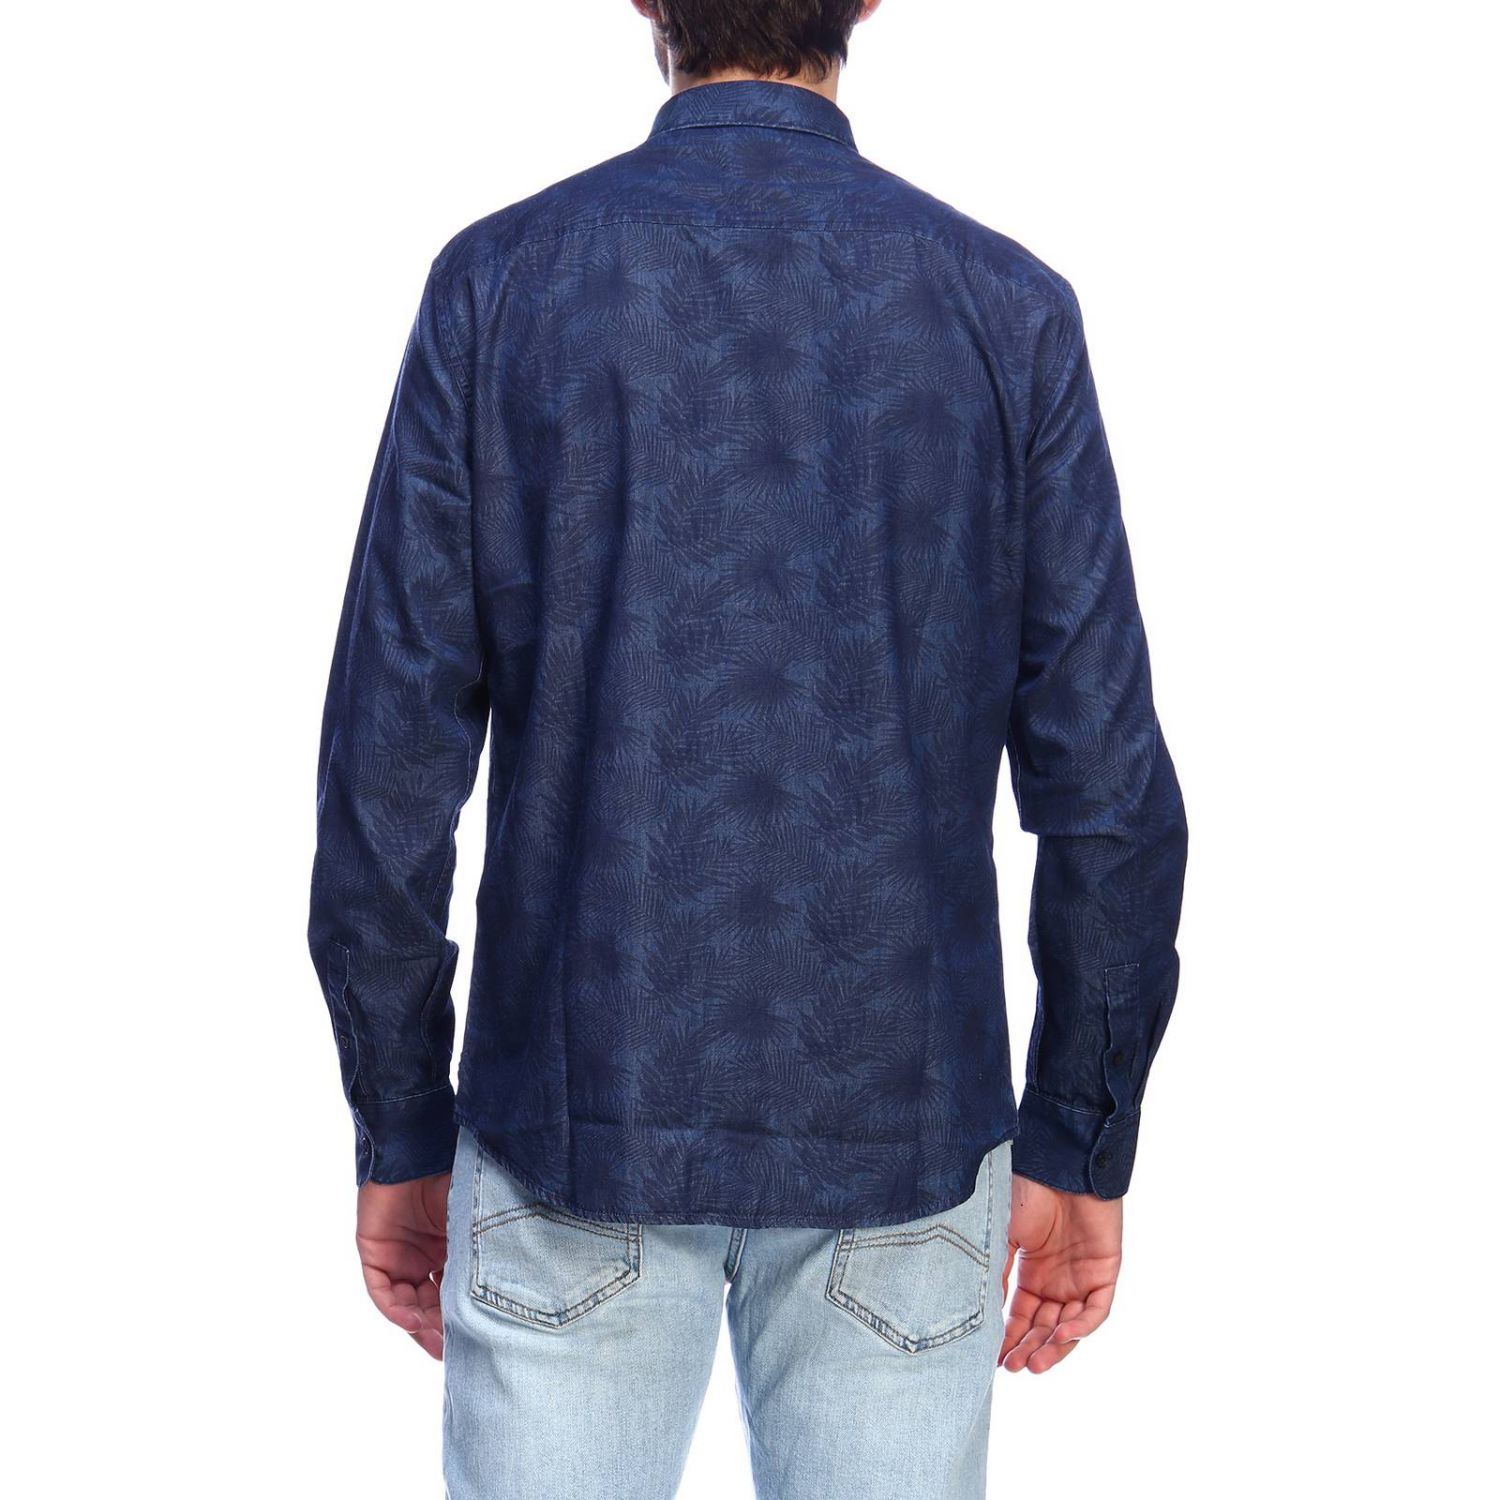 Camicia Armani Exchange in cotone con stampa di foglie e collo italiano blue 3